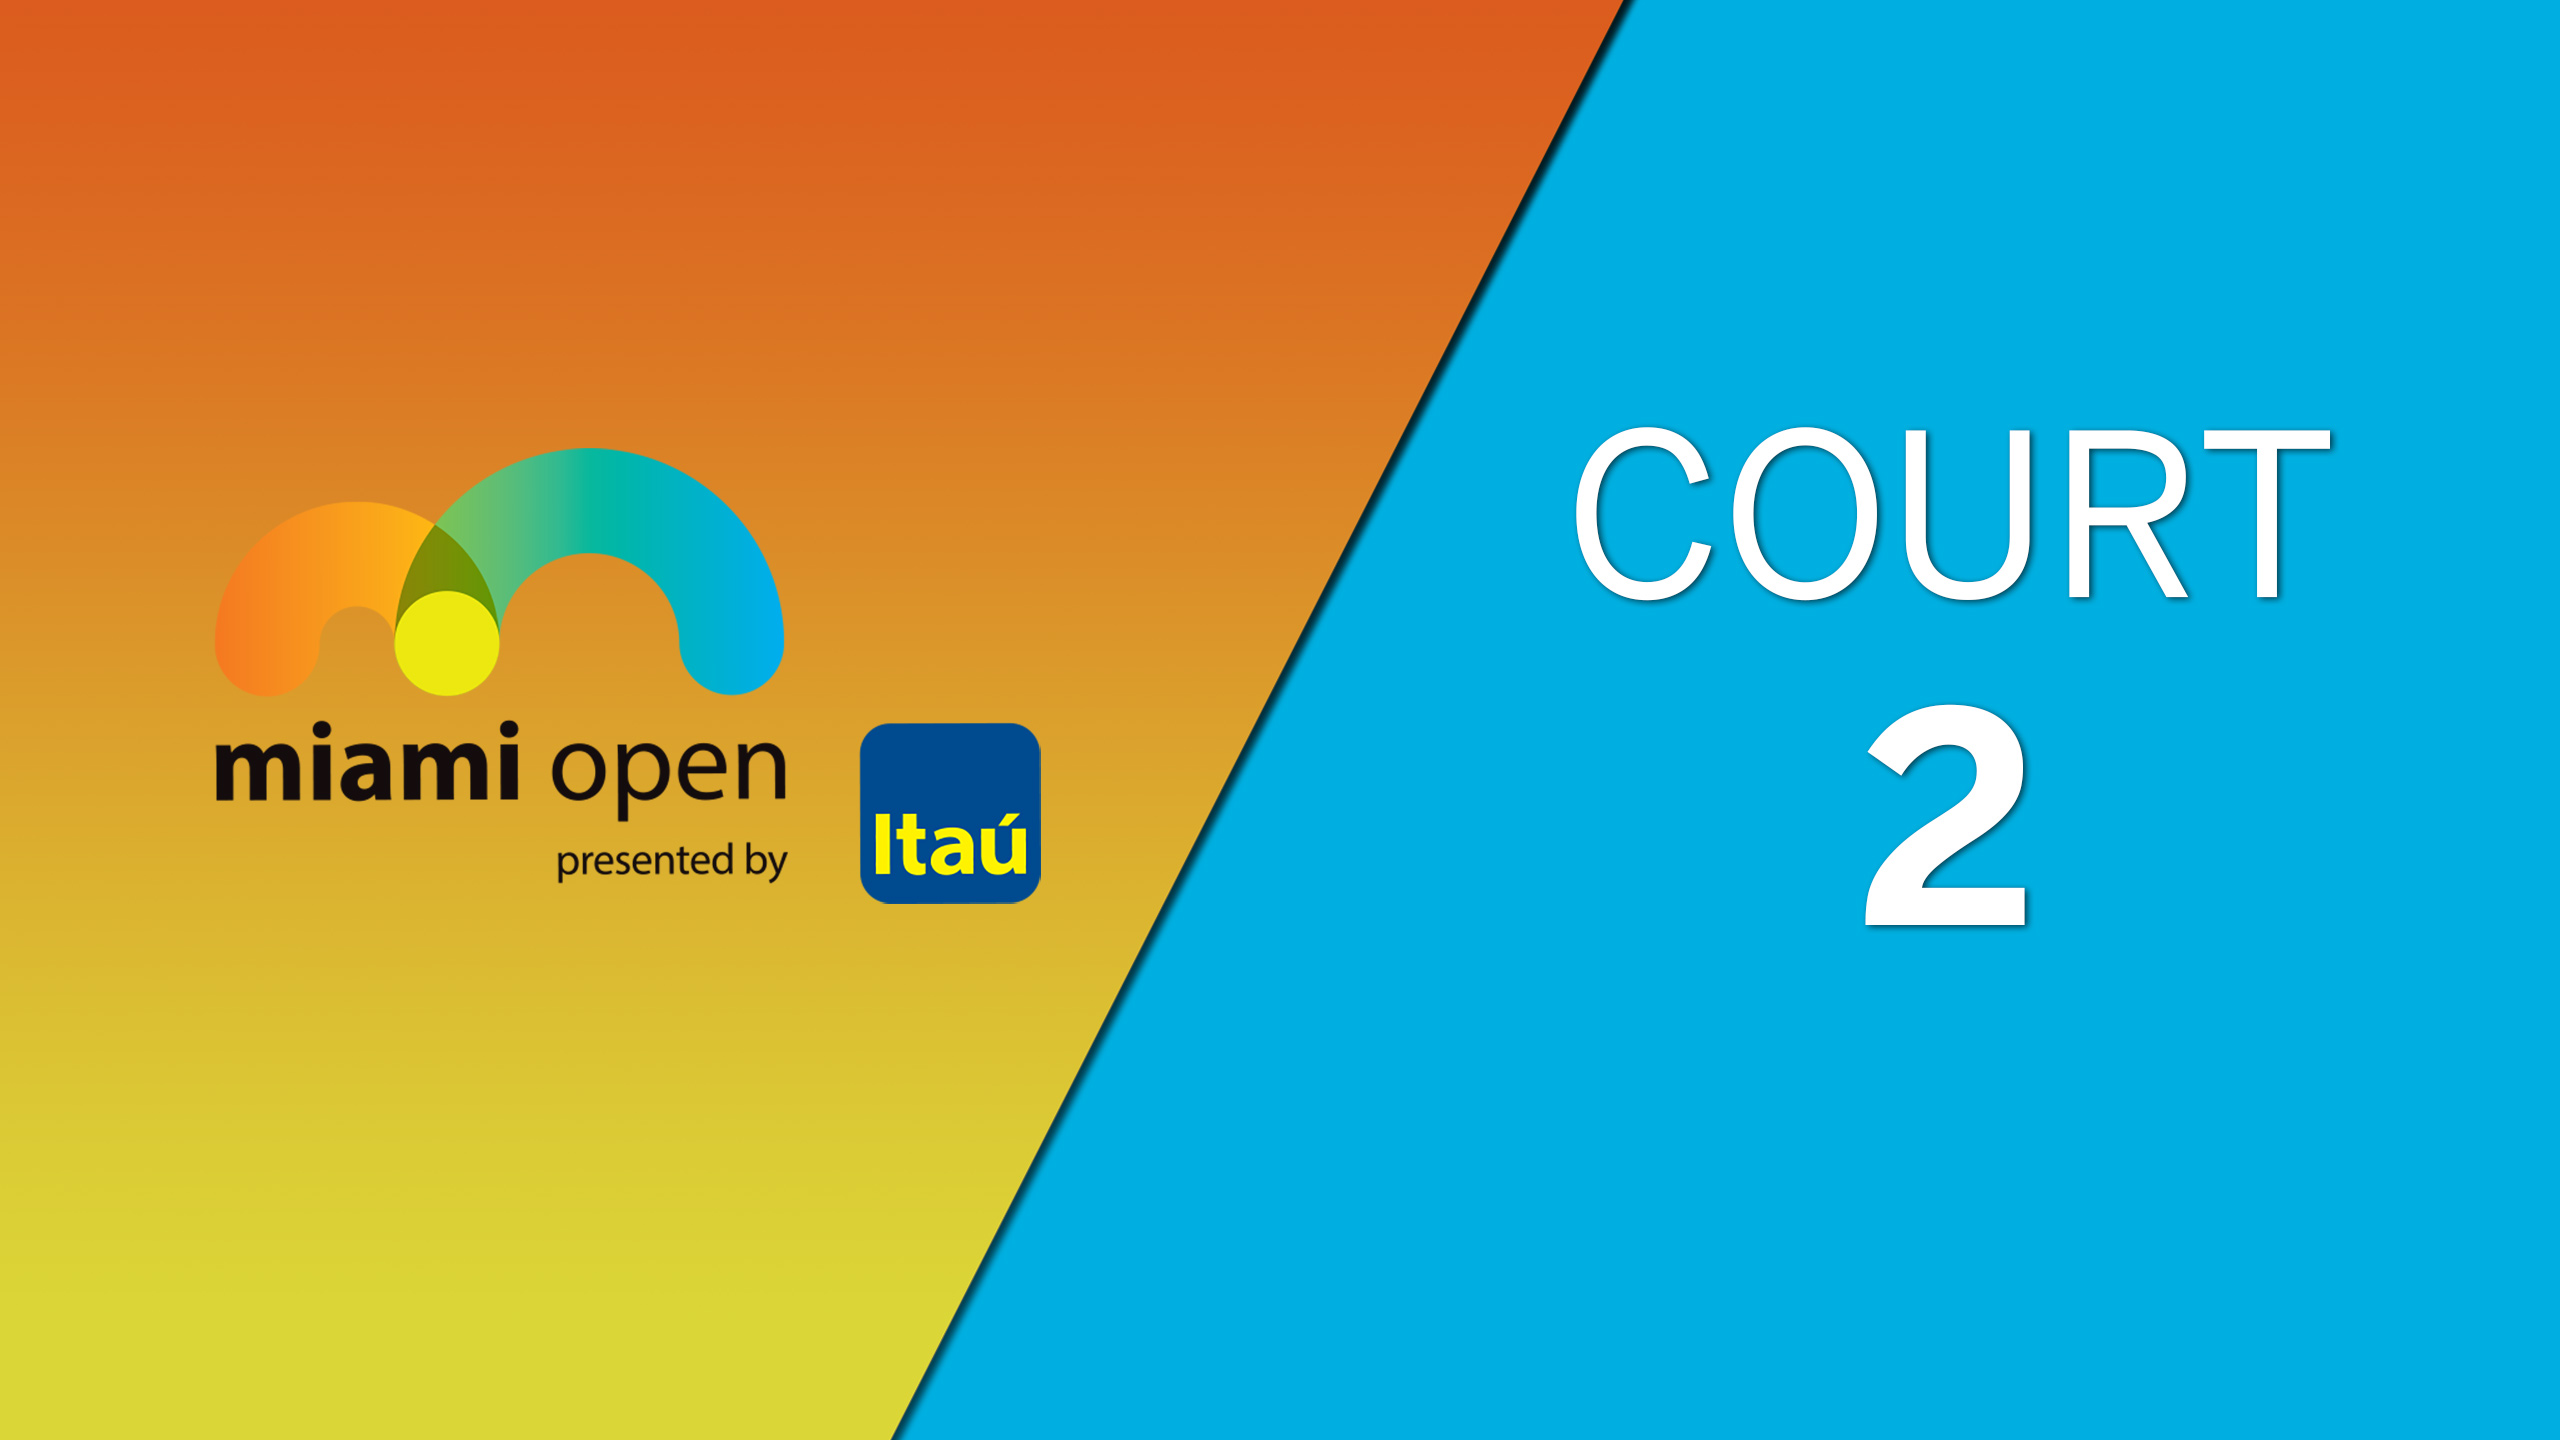 WTA: Court 2 - Miami Open